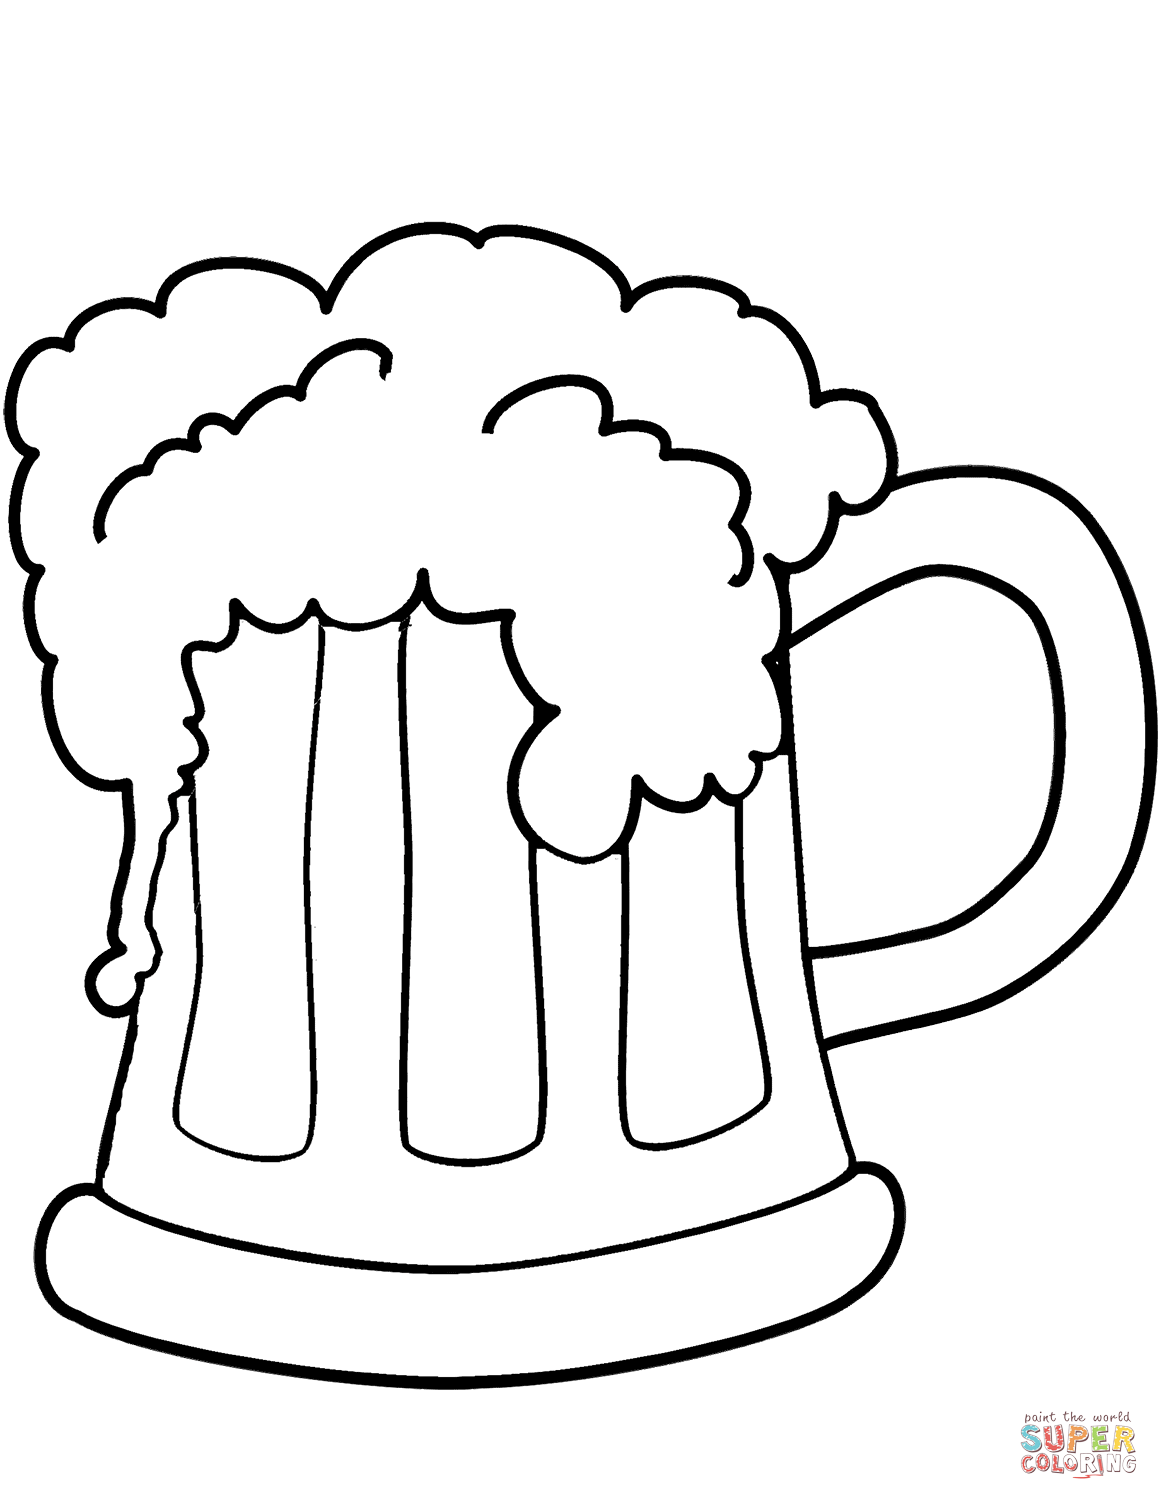 1159x1500 St. Patrick's Day Beer Coloring Page Free Printable Coloring Pages